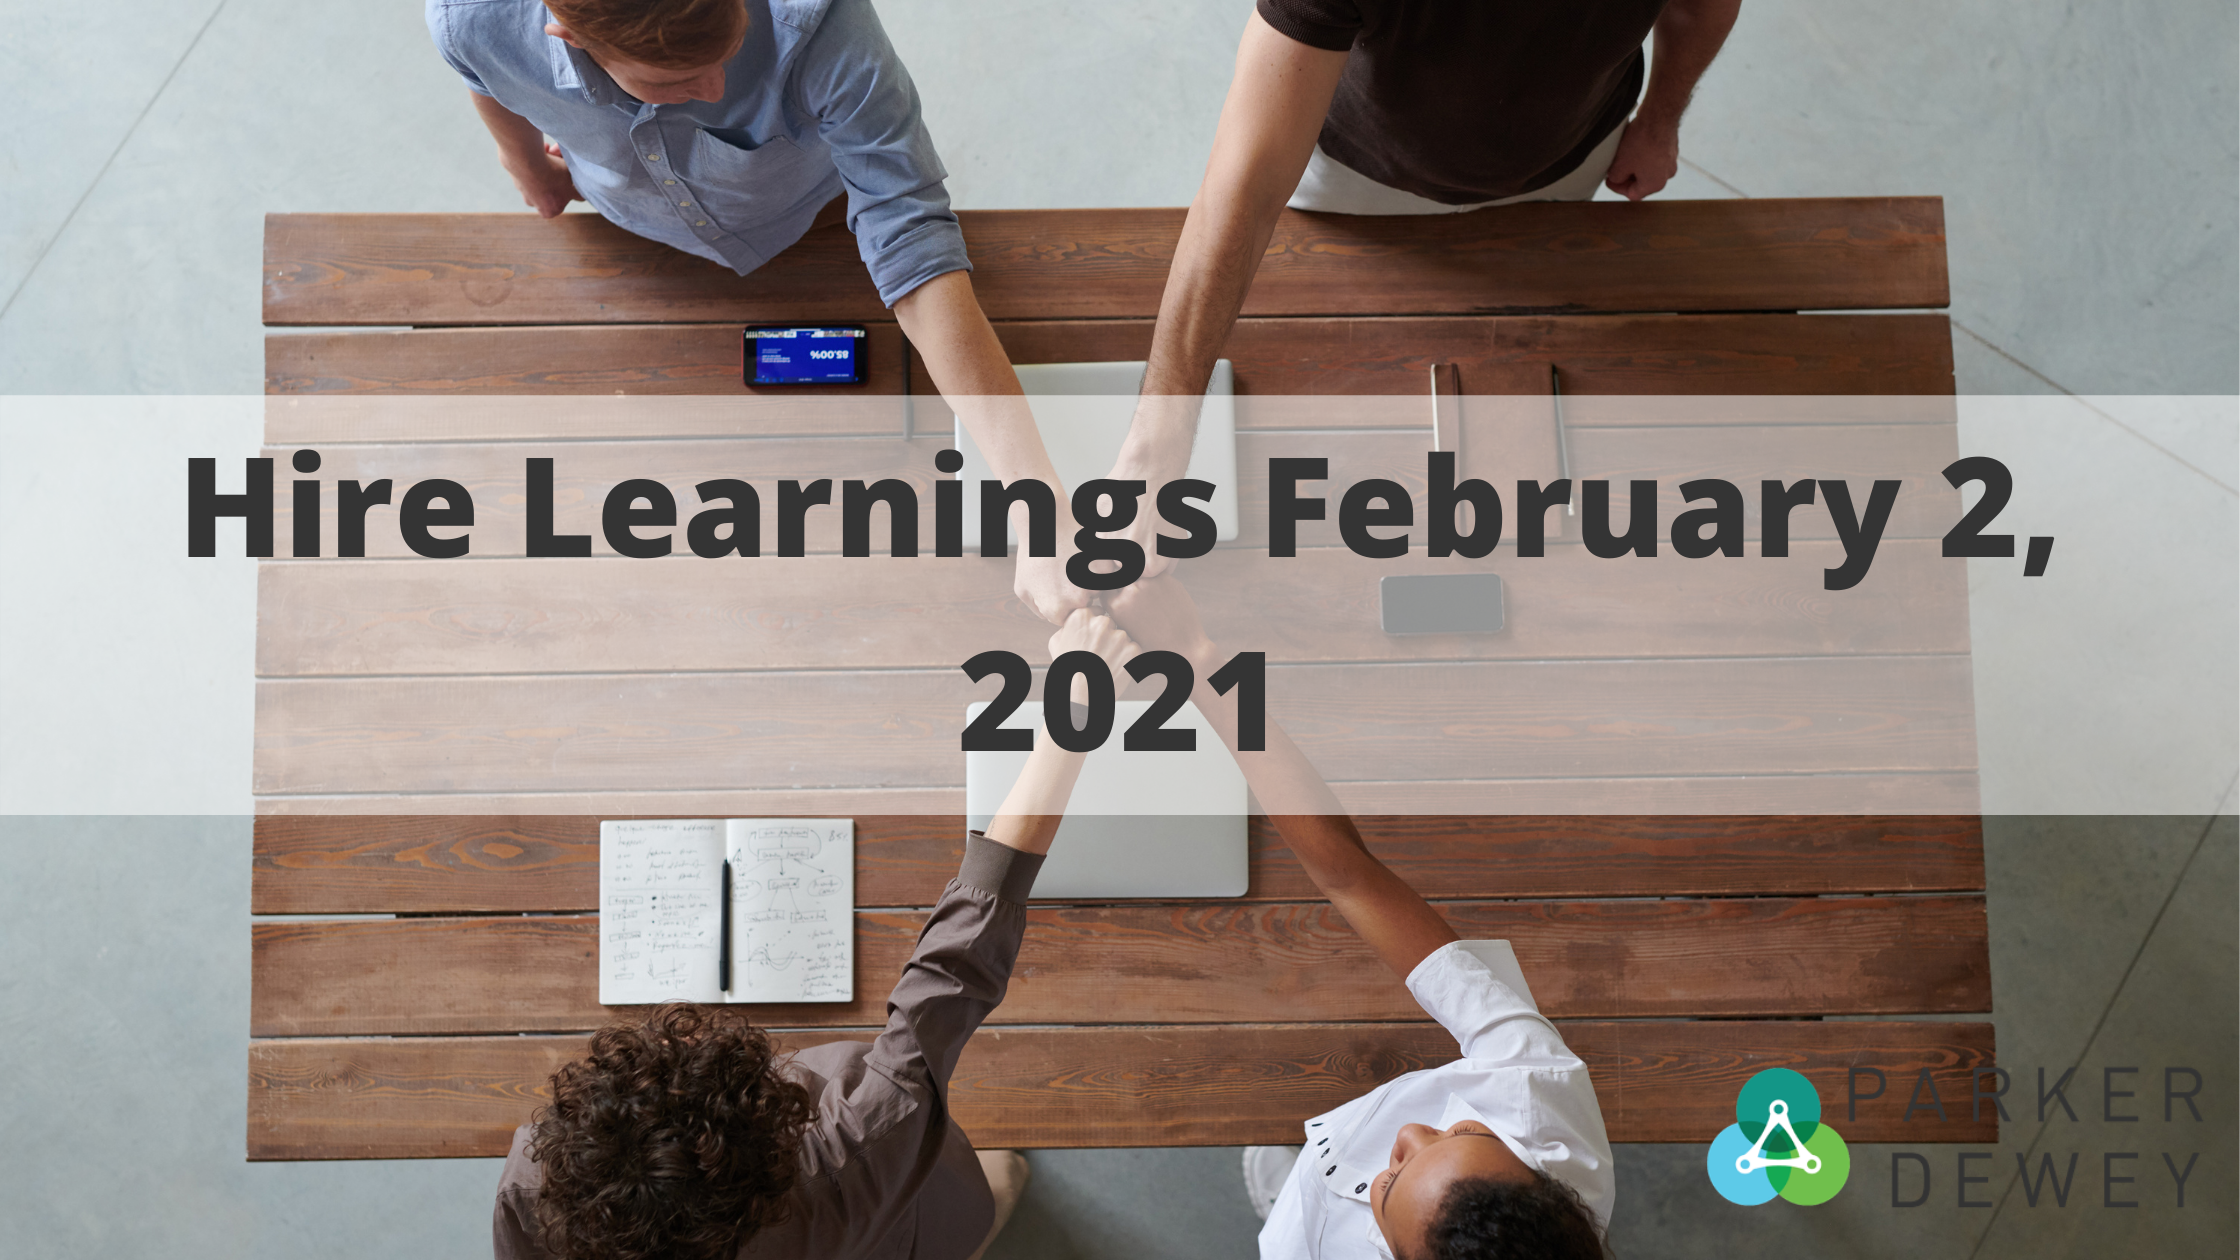 Hire Learnings February 2, 2021